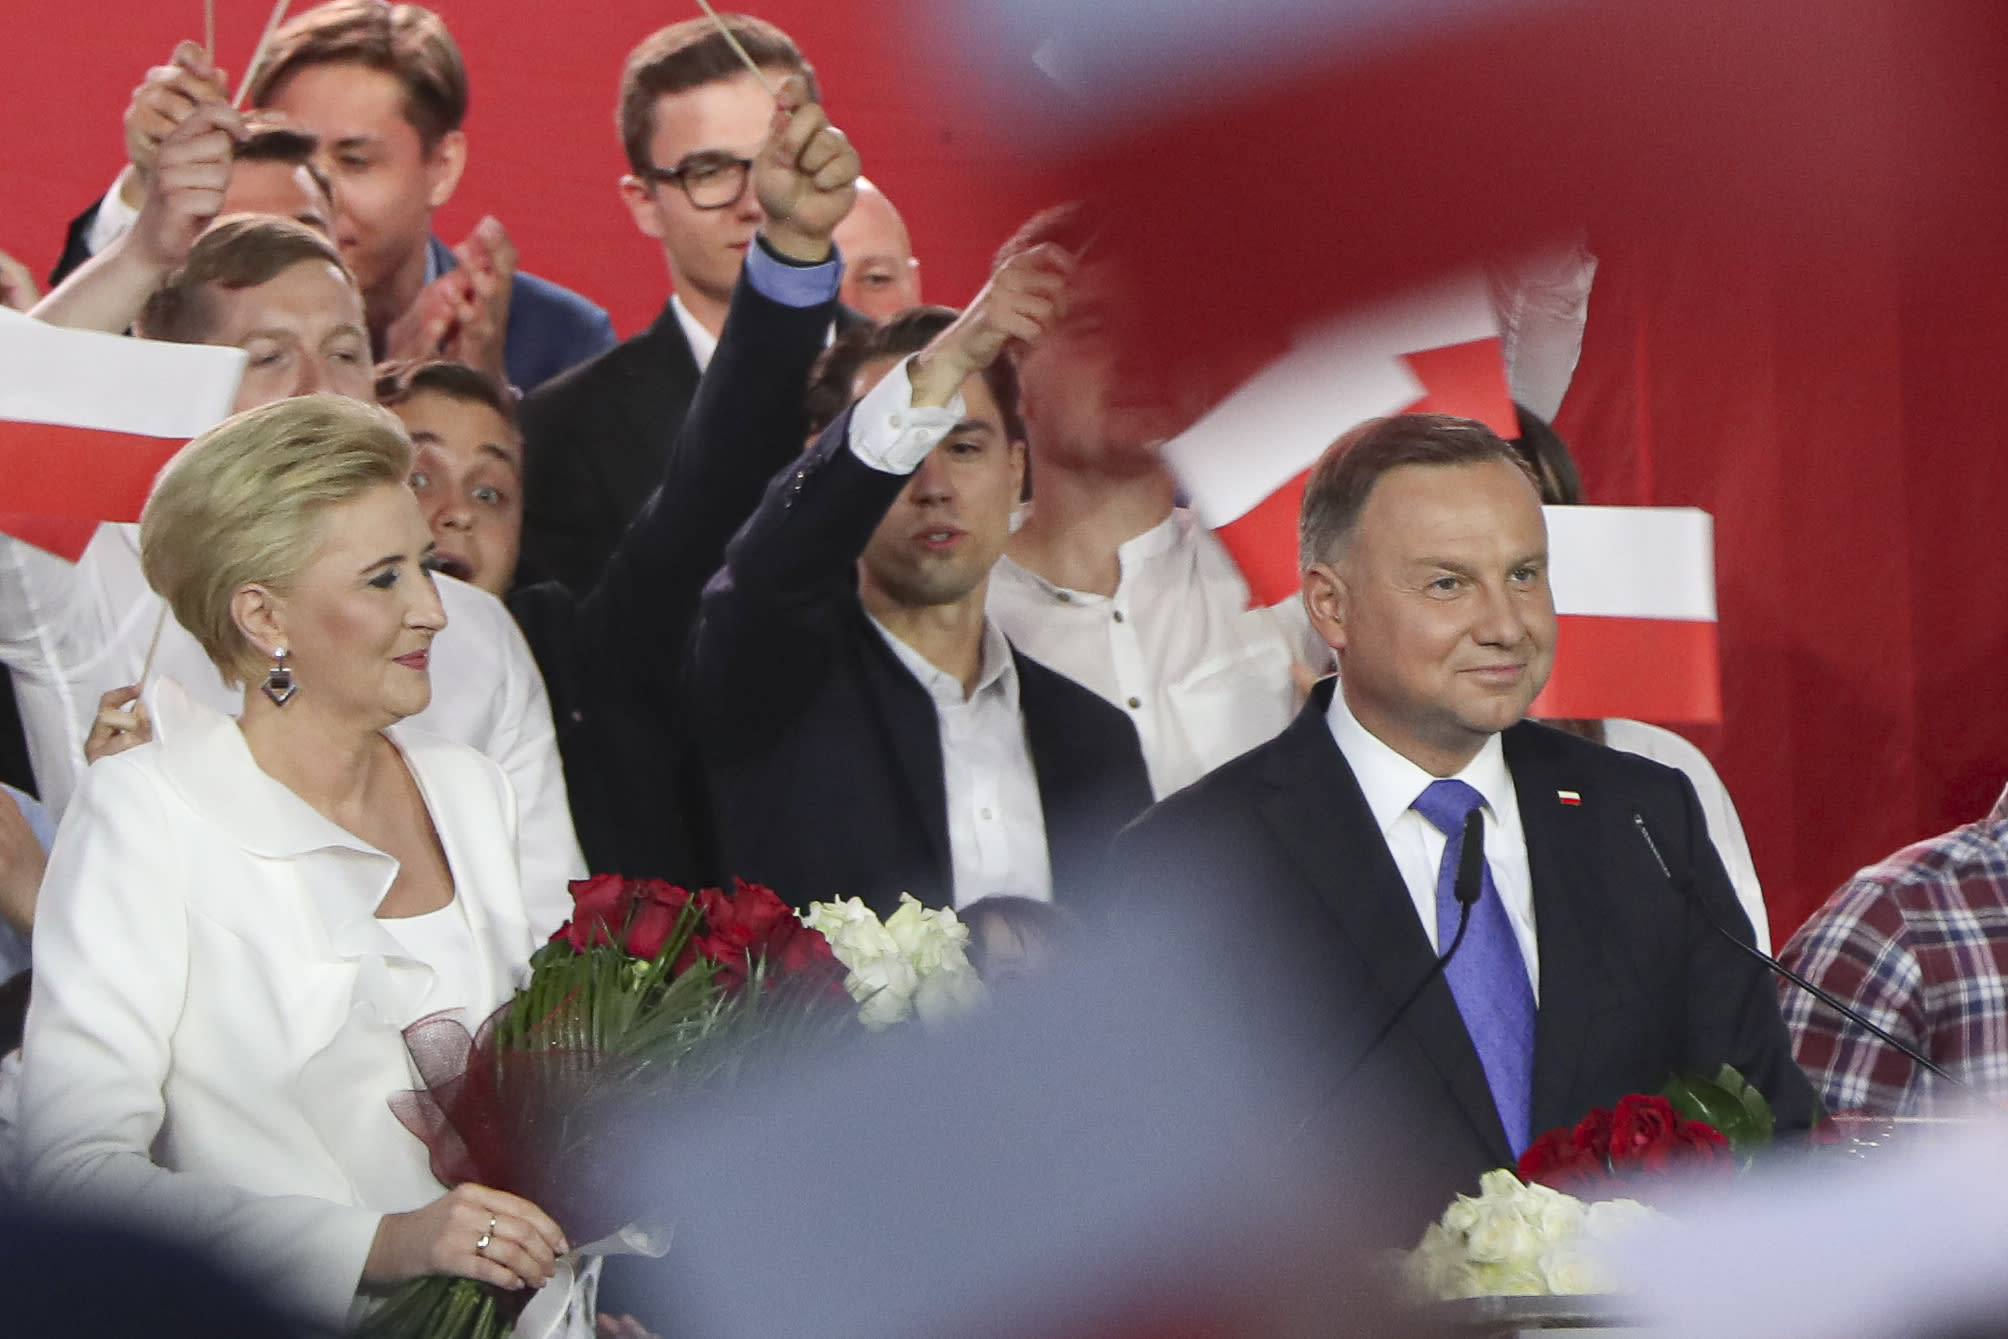 Incumbent President Andrzej Duda, right, smiles next to his wife Agata Kornhauser-Duda while addressing supporters in Pultusk, Poland, Sunday, July 12, 2020. Conservative Duda ran against liberal Warsaw Mayor Rafal Trzaskowski in a razor-blade-close presidential election runoff and exit poll shows election is too close to call. (AP Photo/Czarek Sokolowski)